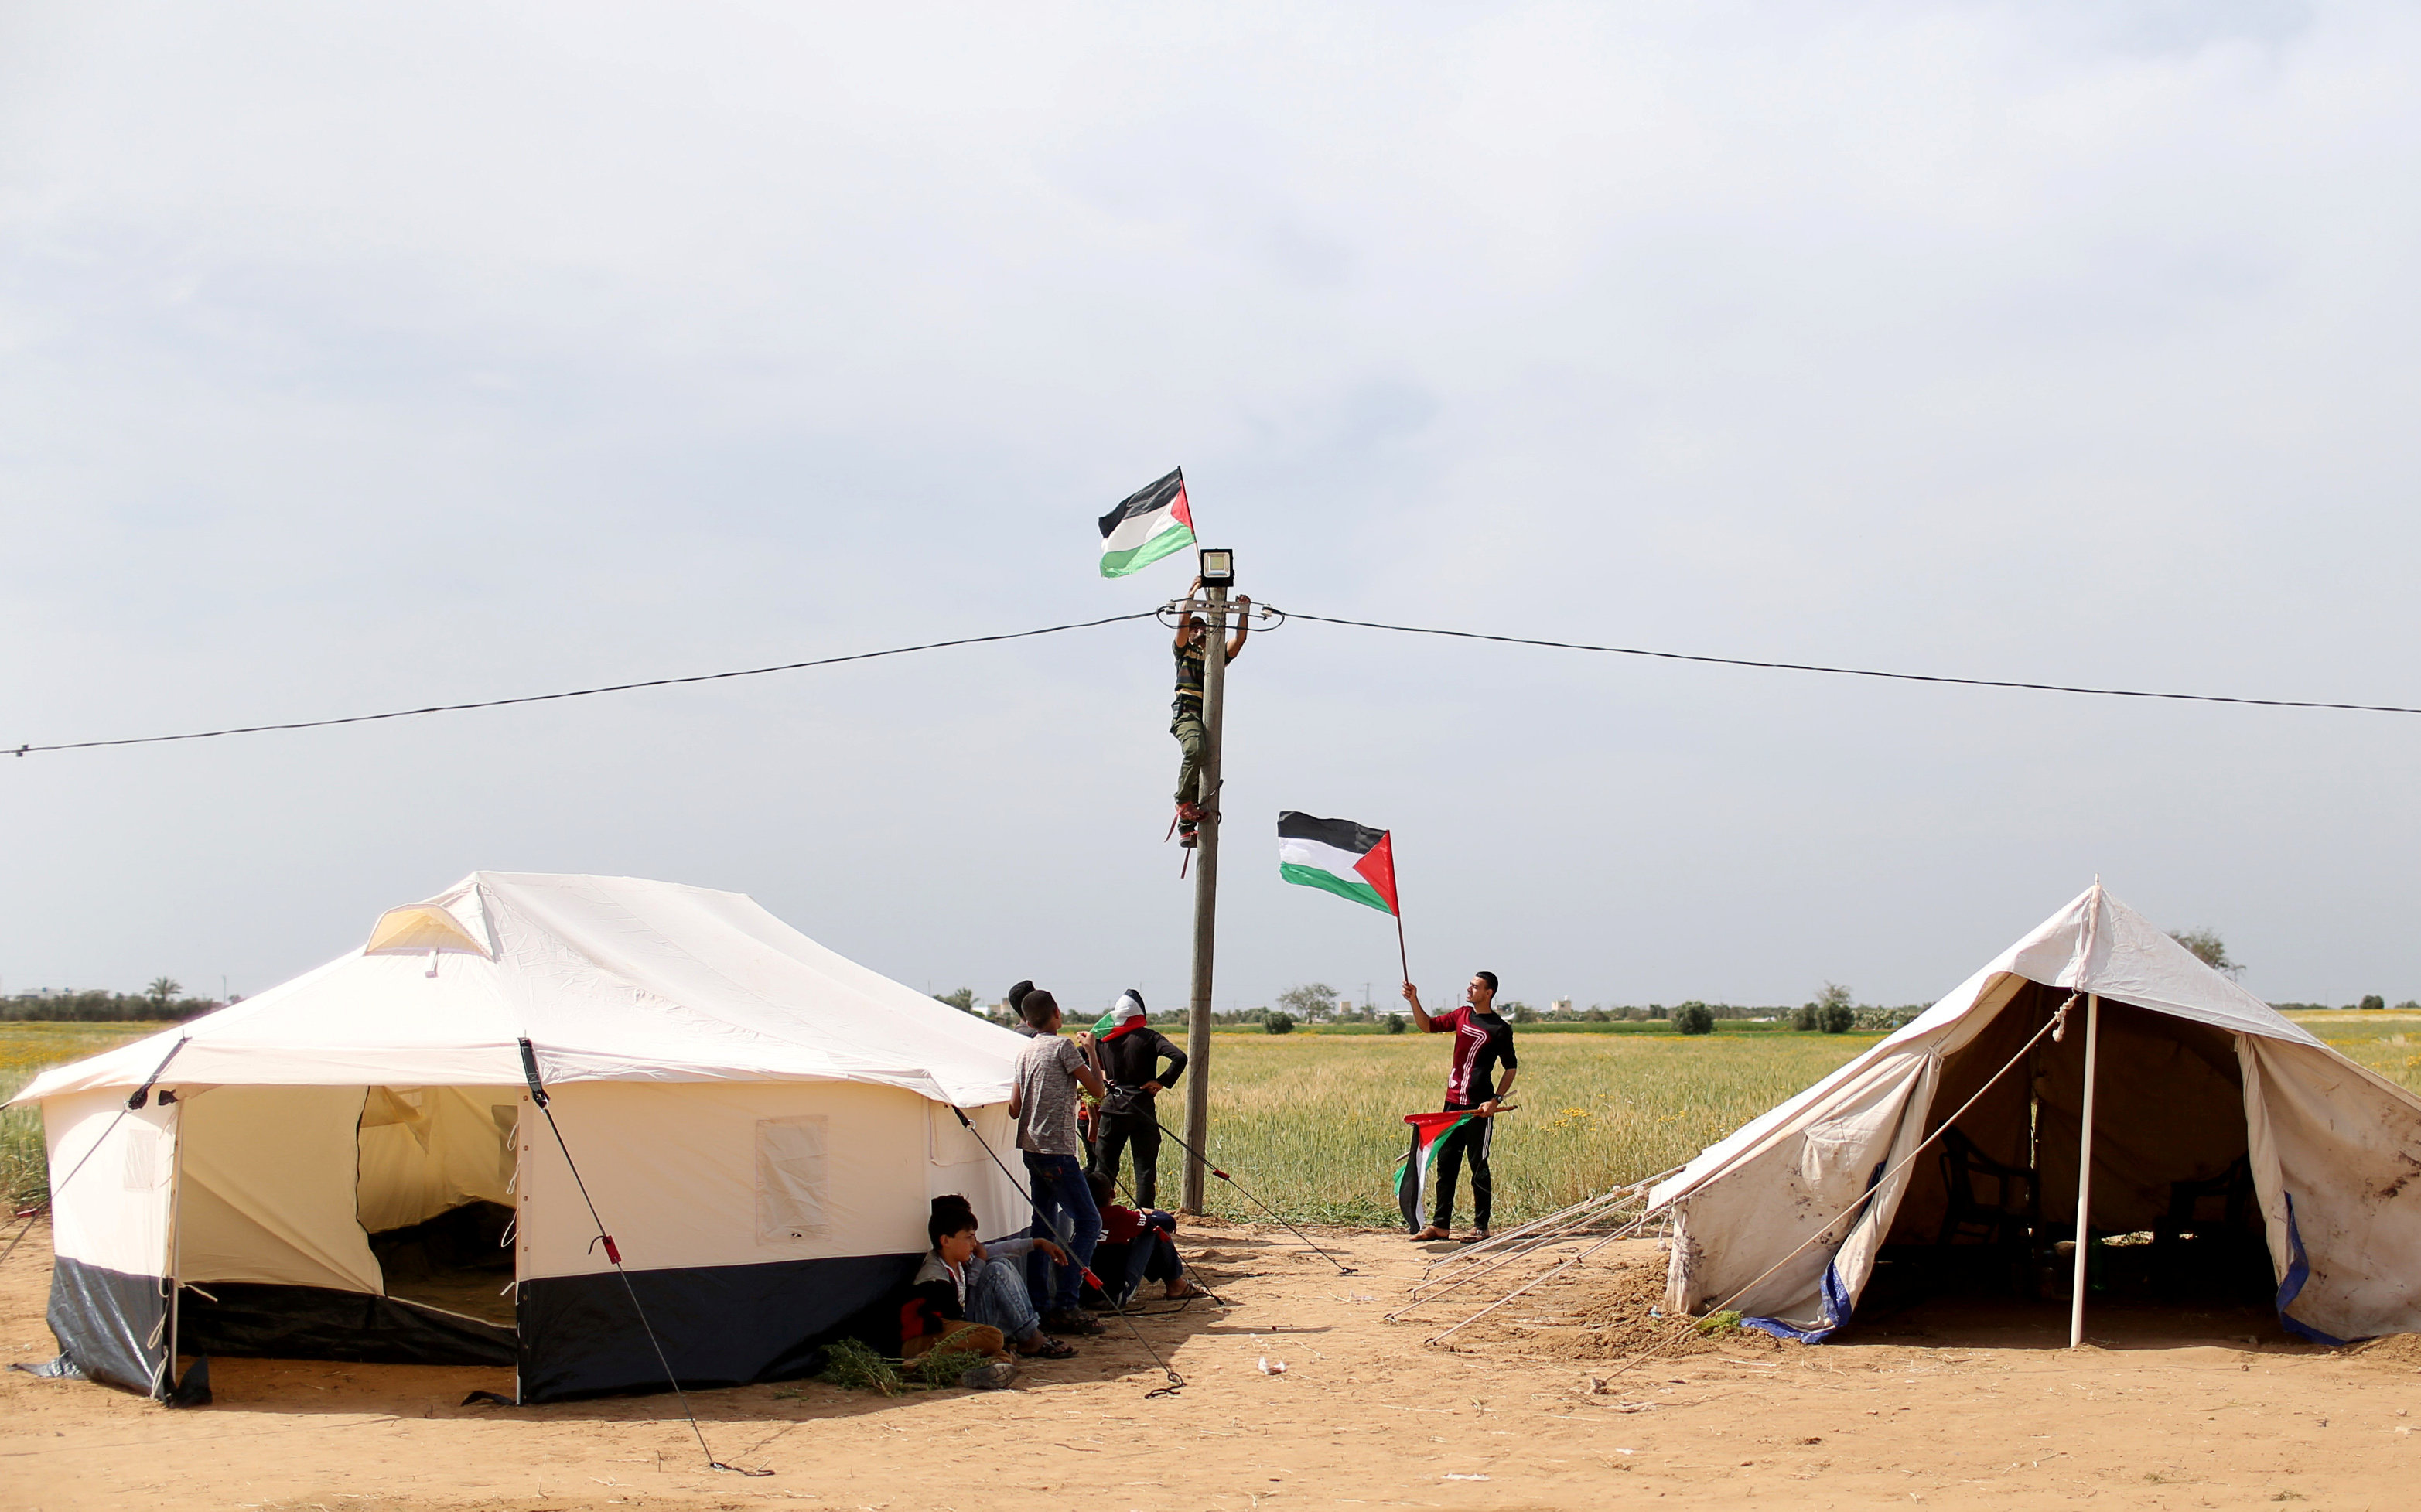 A man hangs a Palestinian flag at an electric pole near the border with Israel, in the southern Gaza Strip March 28, 2018. REUTERS/Ibraheem Abu Mustafa